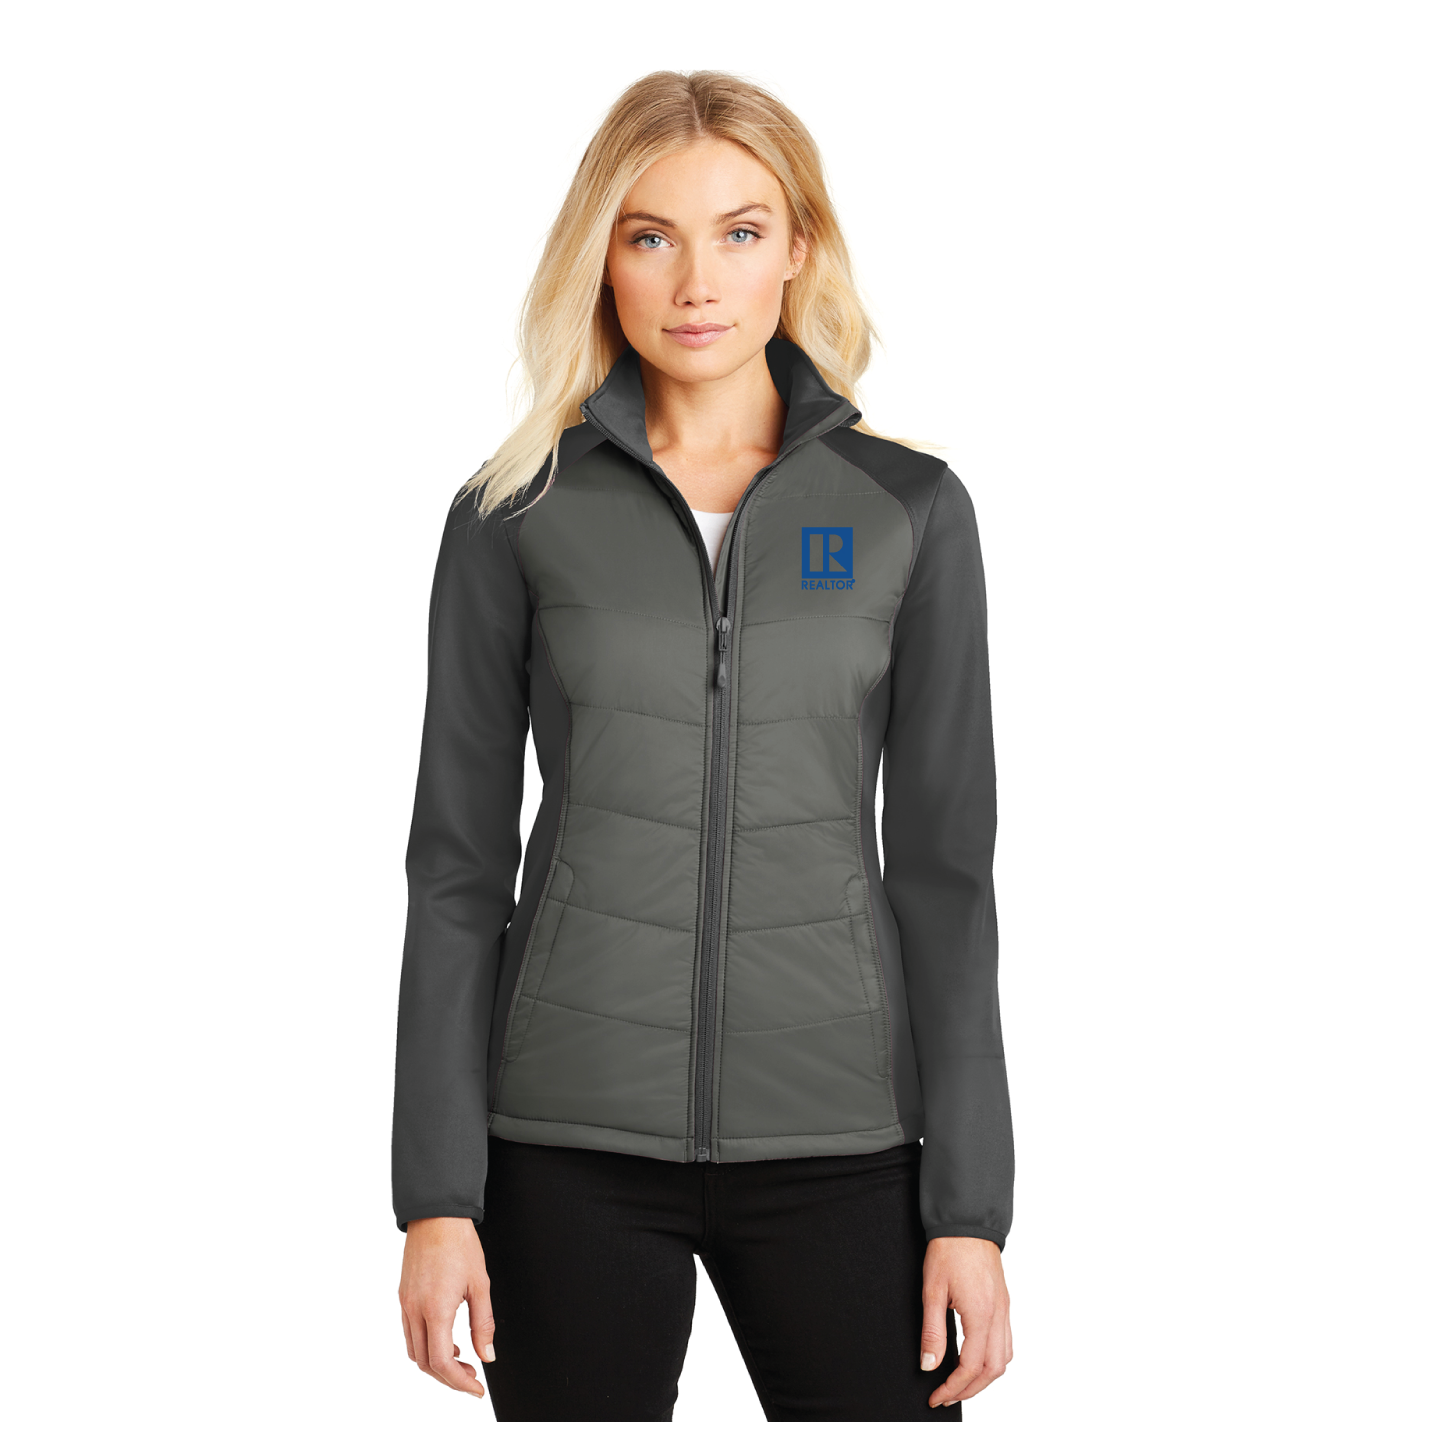 Ladie's Quilted Softshell Mashup Jacket - RCL4107